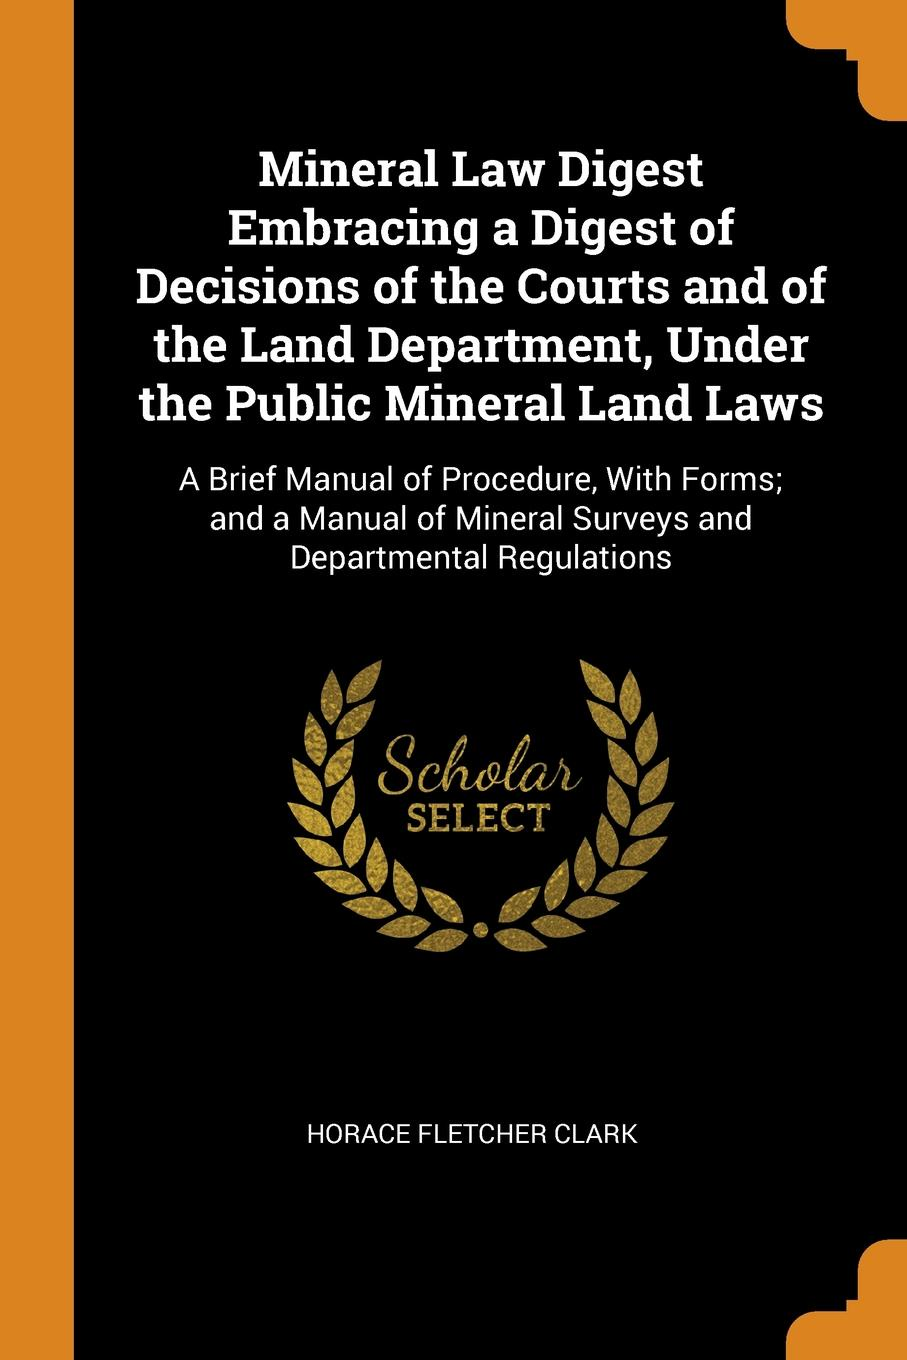 Horace Fletcher Clark Mineral Law Digest Embracing a of Decisions the Courts and Land Department, Under Public Laws. A Brief Manual Procedure, With Forms; Surveys Departmental Regulations